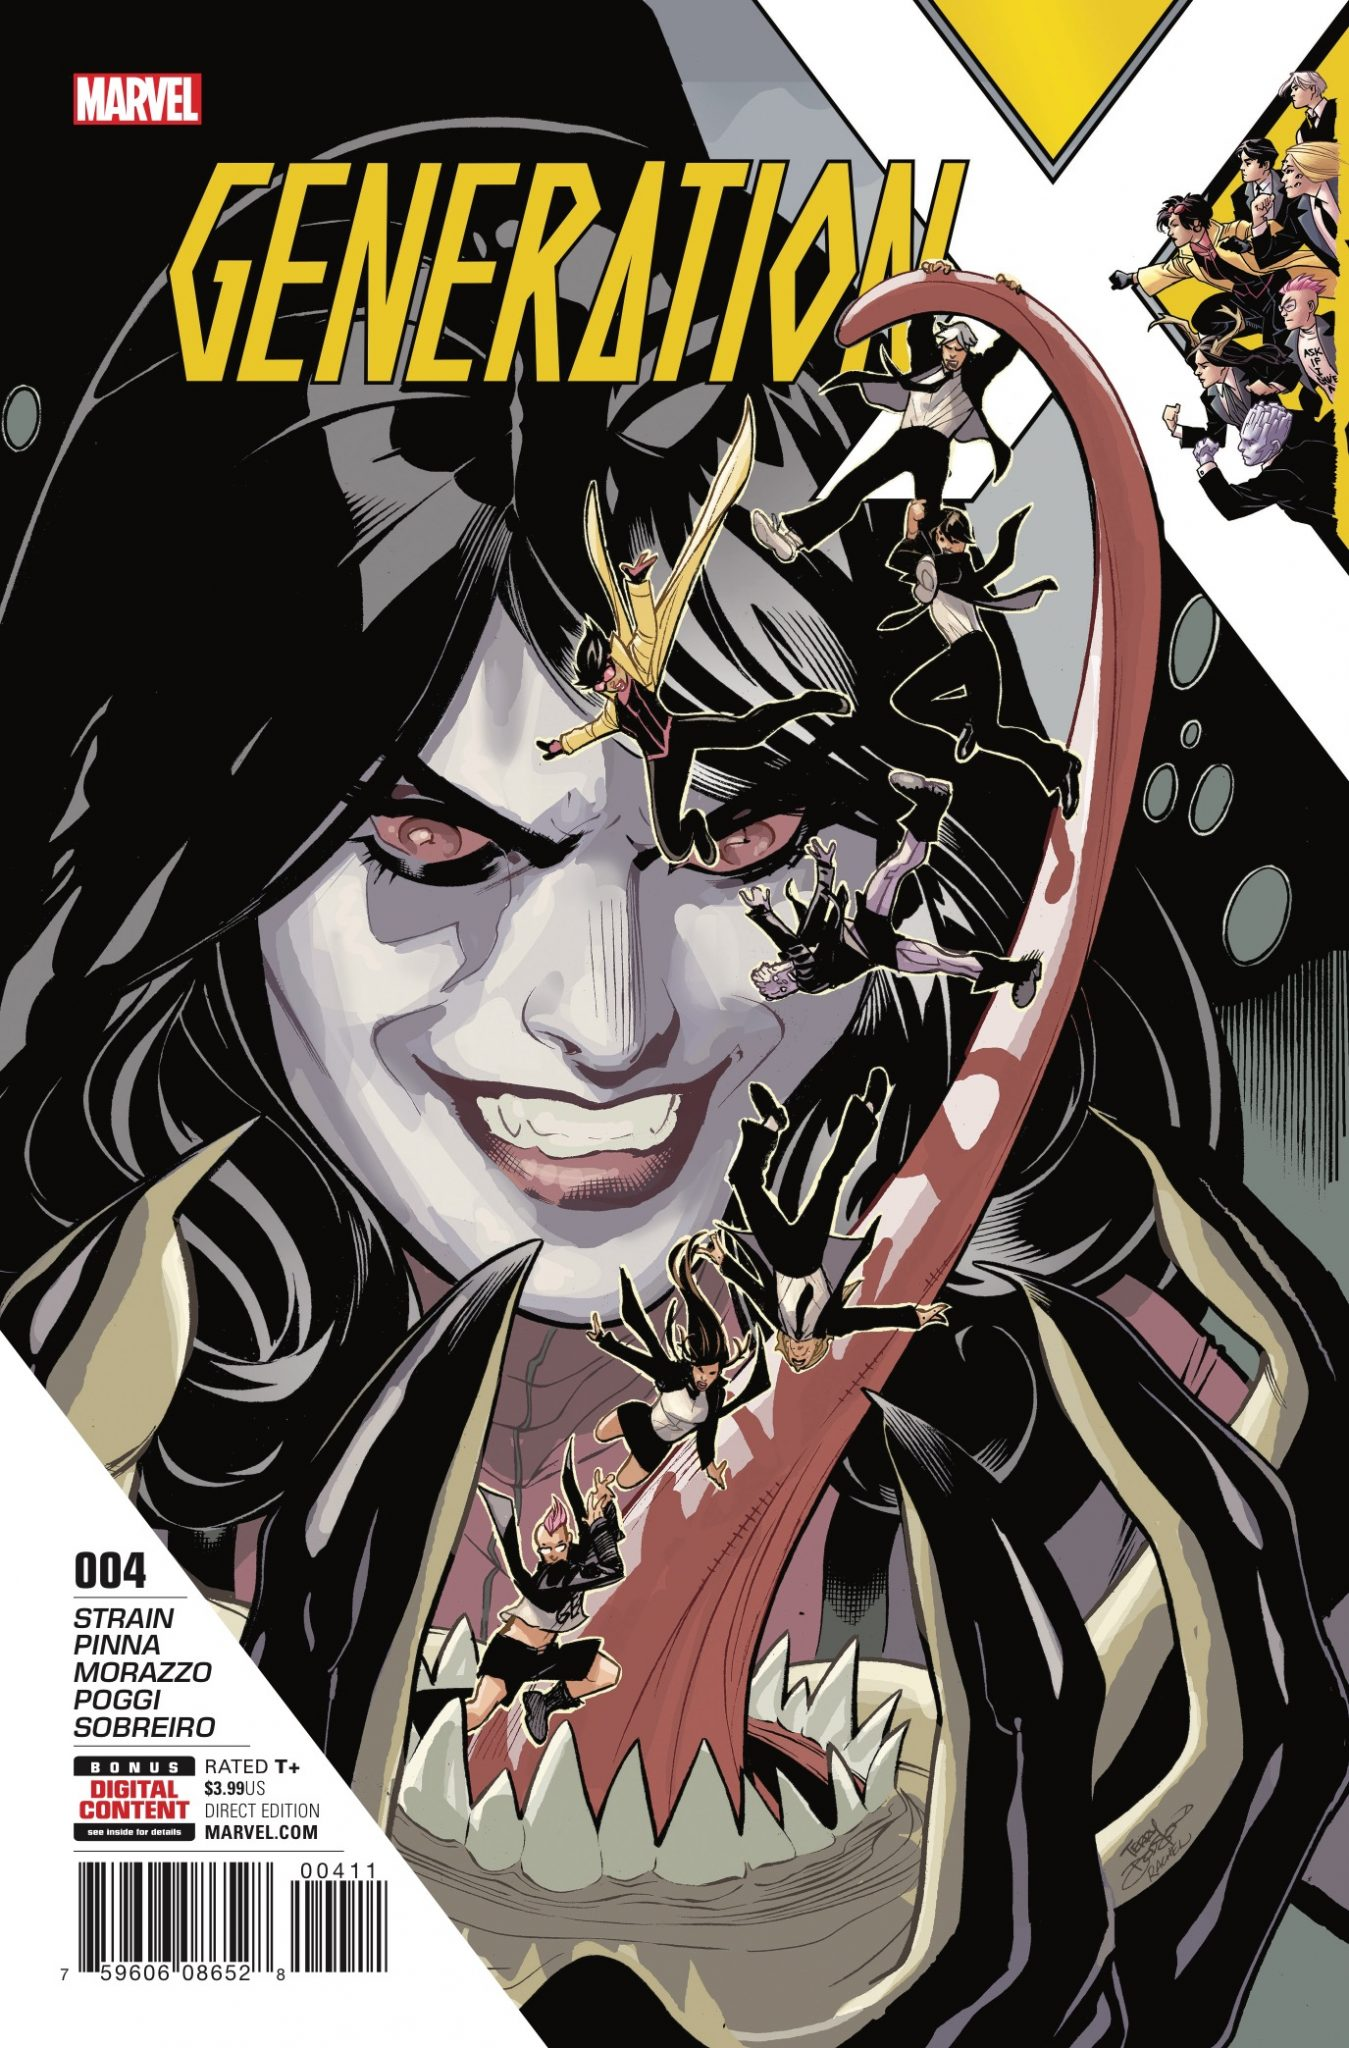 Generation X #4 Review